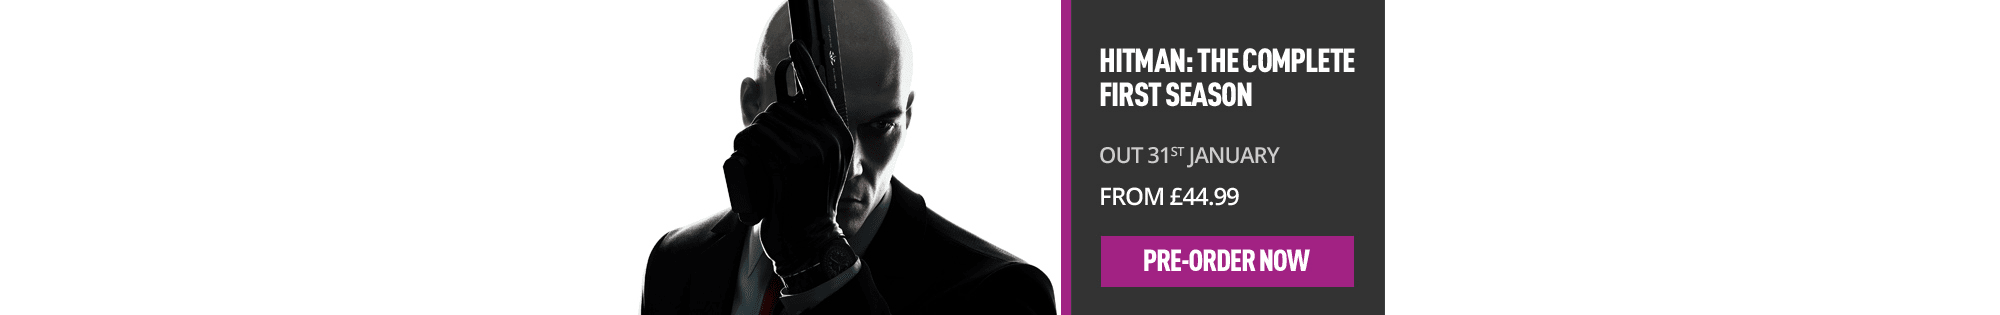 HITMAN: The Complete First Season  for Xbox One and PS4 - Pre-order Now at GAME.co.uk!